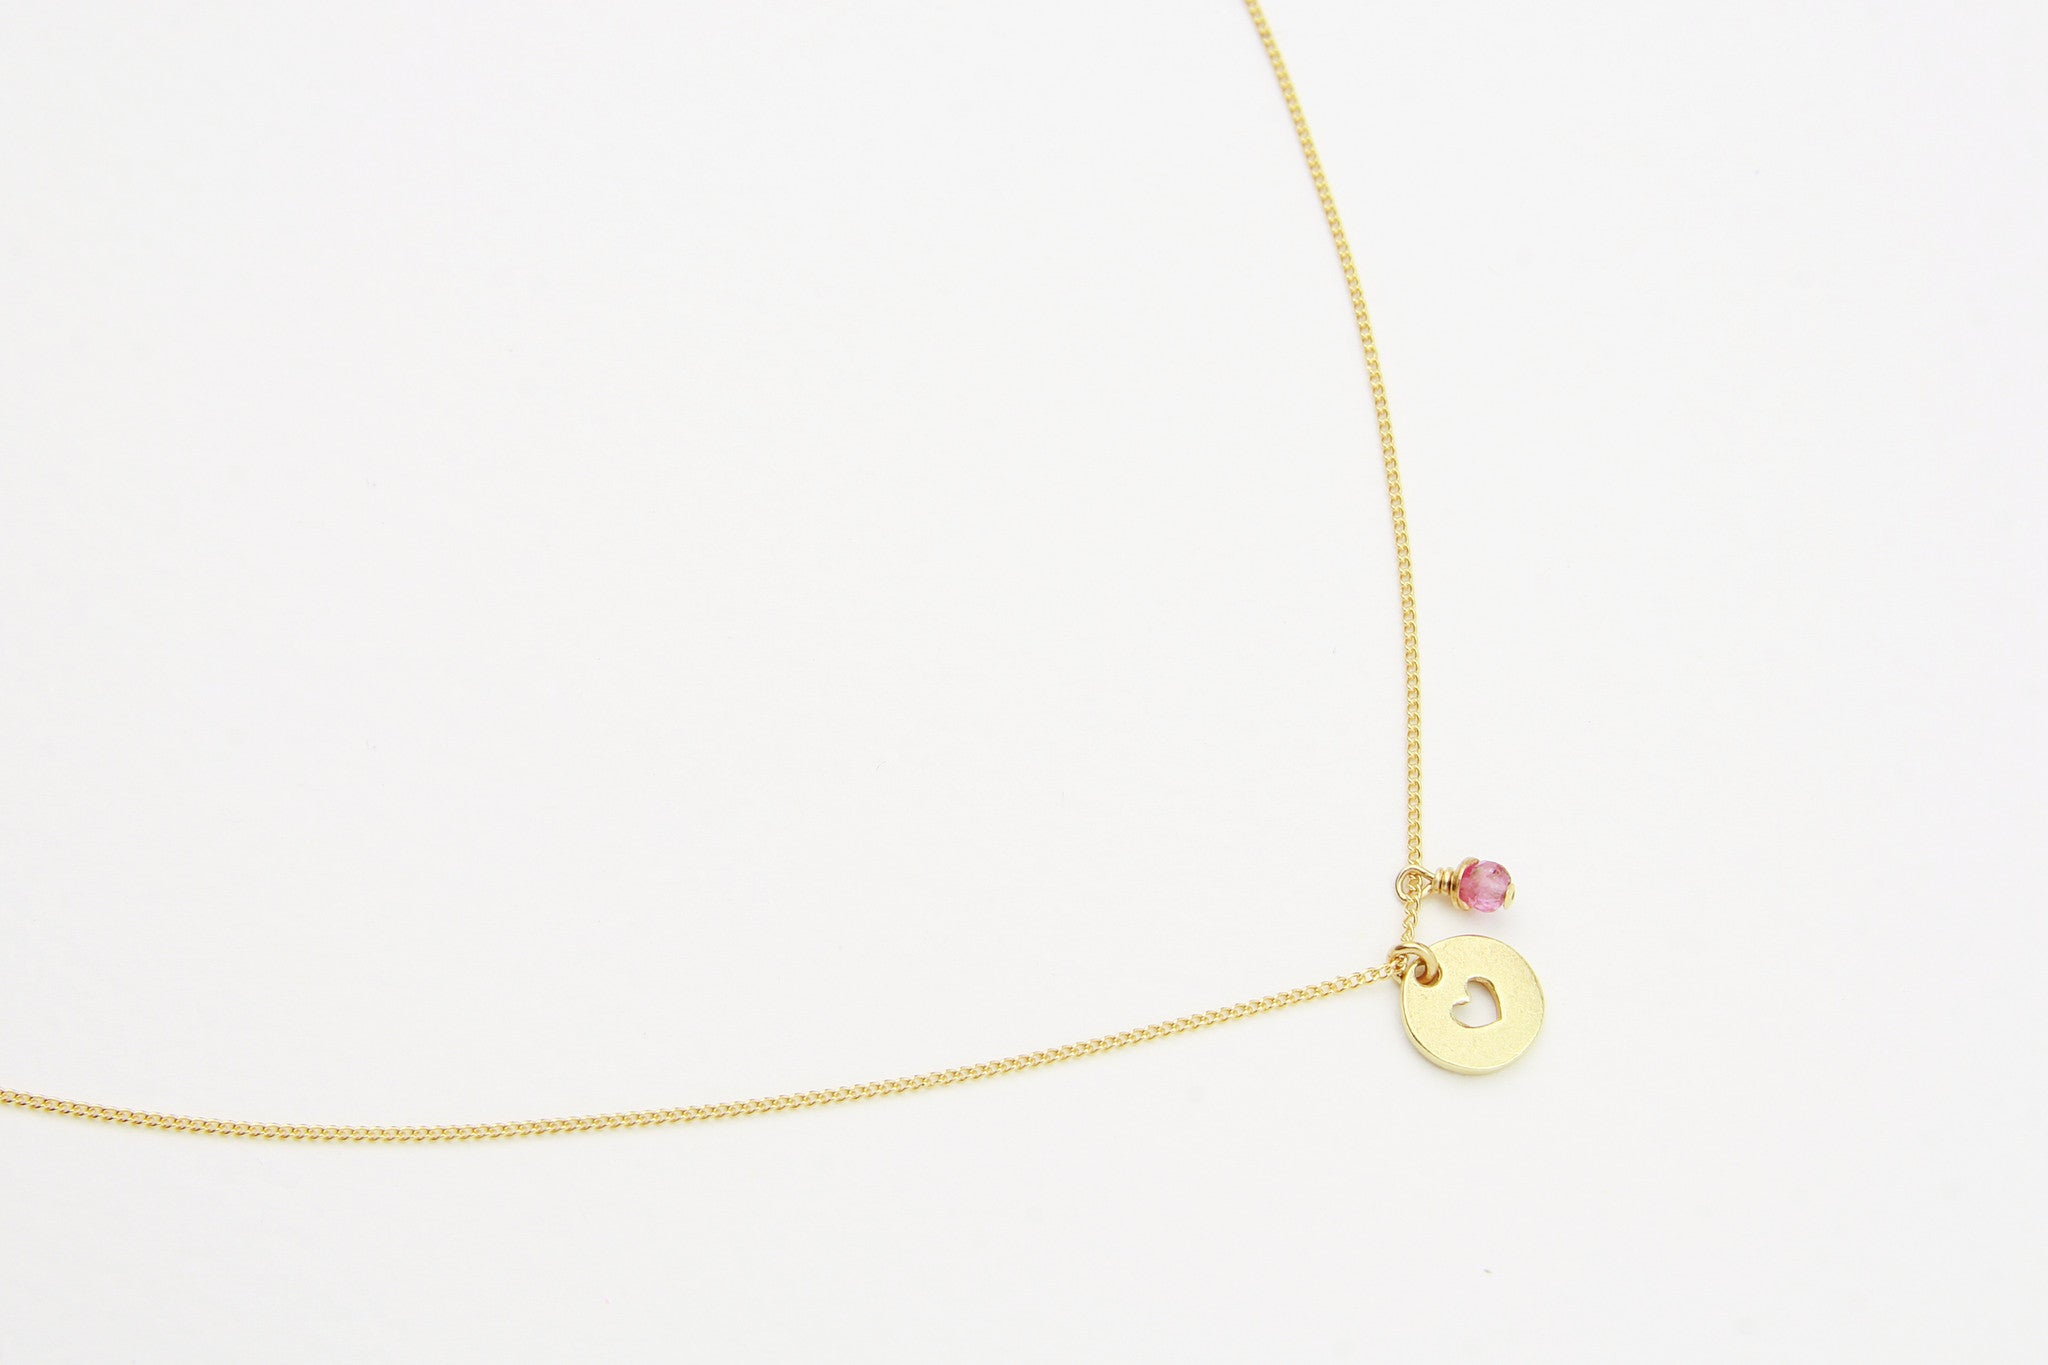 ....Kette LOVE TOKEN 925 Sterling Silber vergoldet..Necklace LOVE TOKEN 925 Sterling silver gold plated....